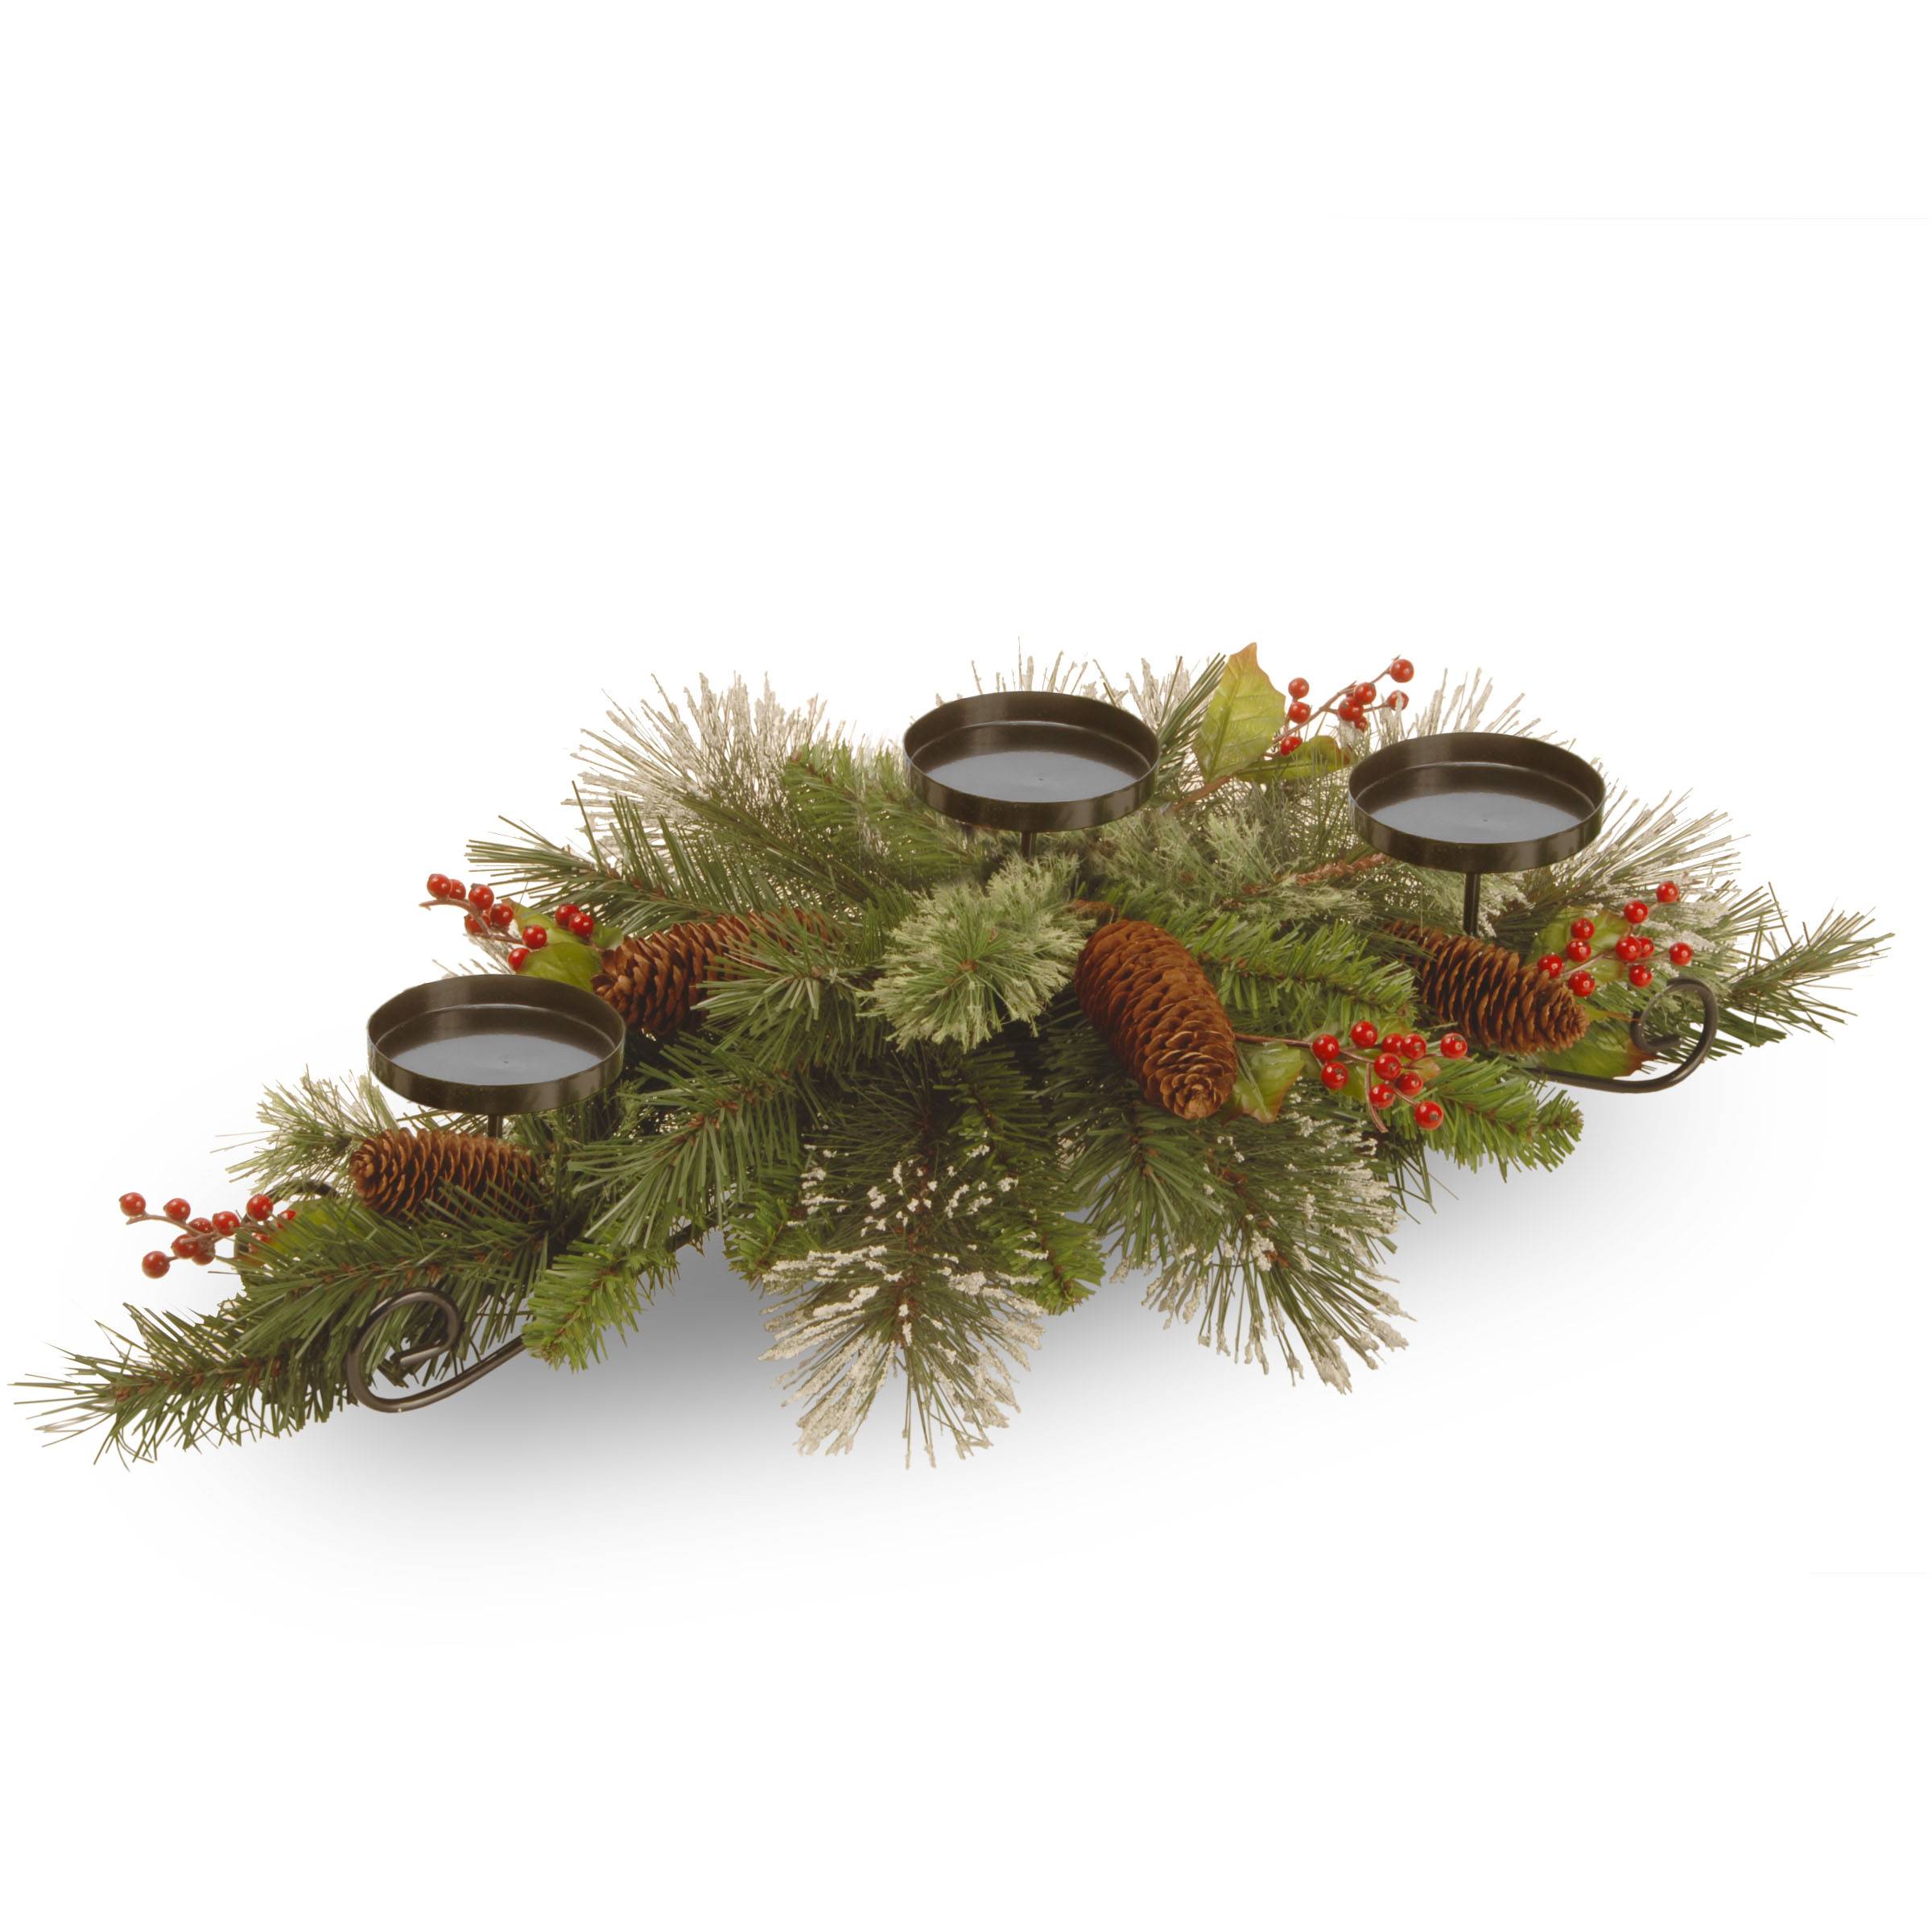 30 inch Wintry Pine Centerpiece:3 Candle Holders w/ Cones, Berries & Snowflakes WP3-832-30C-B